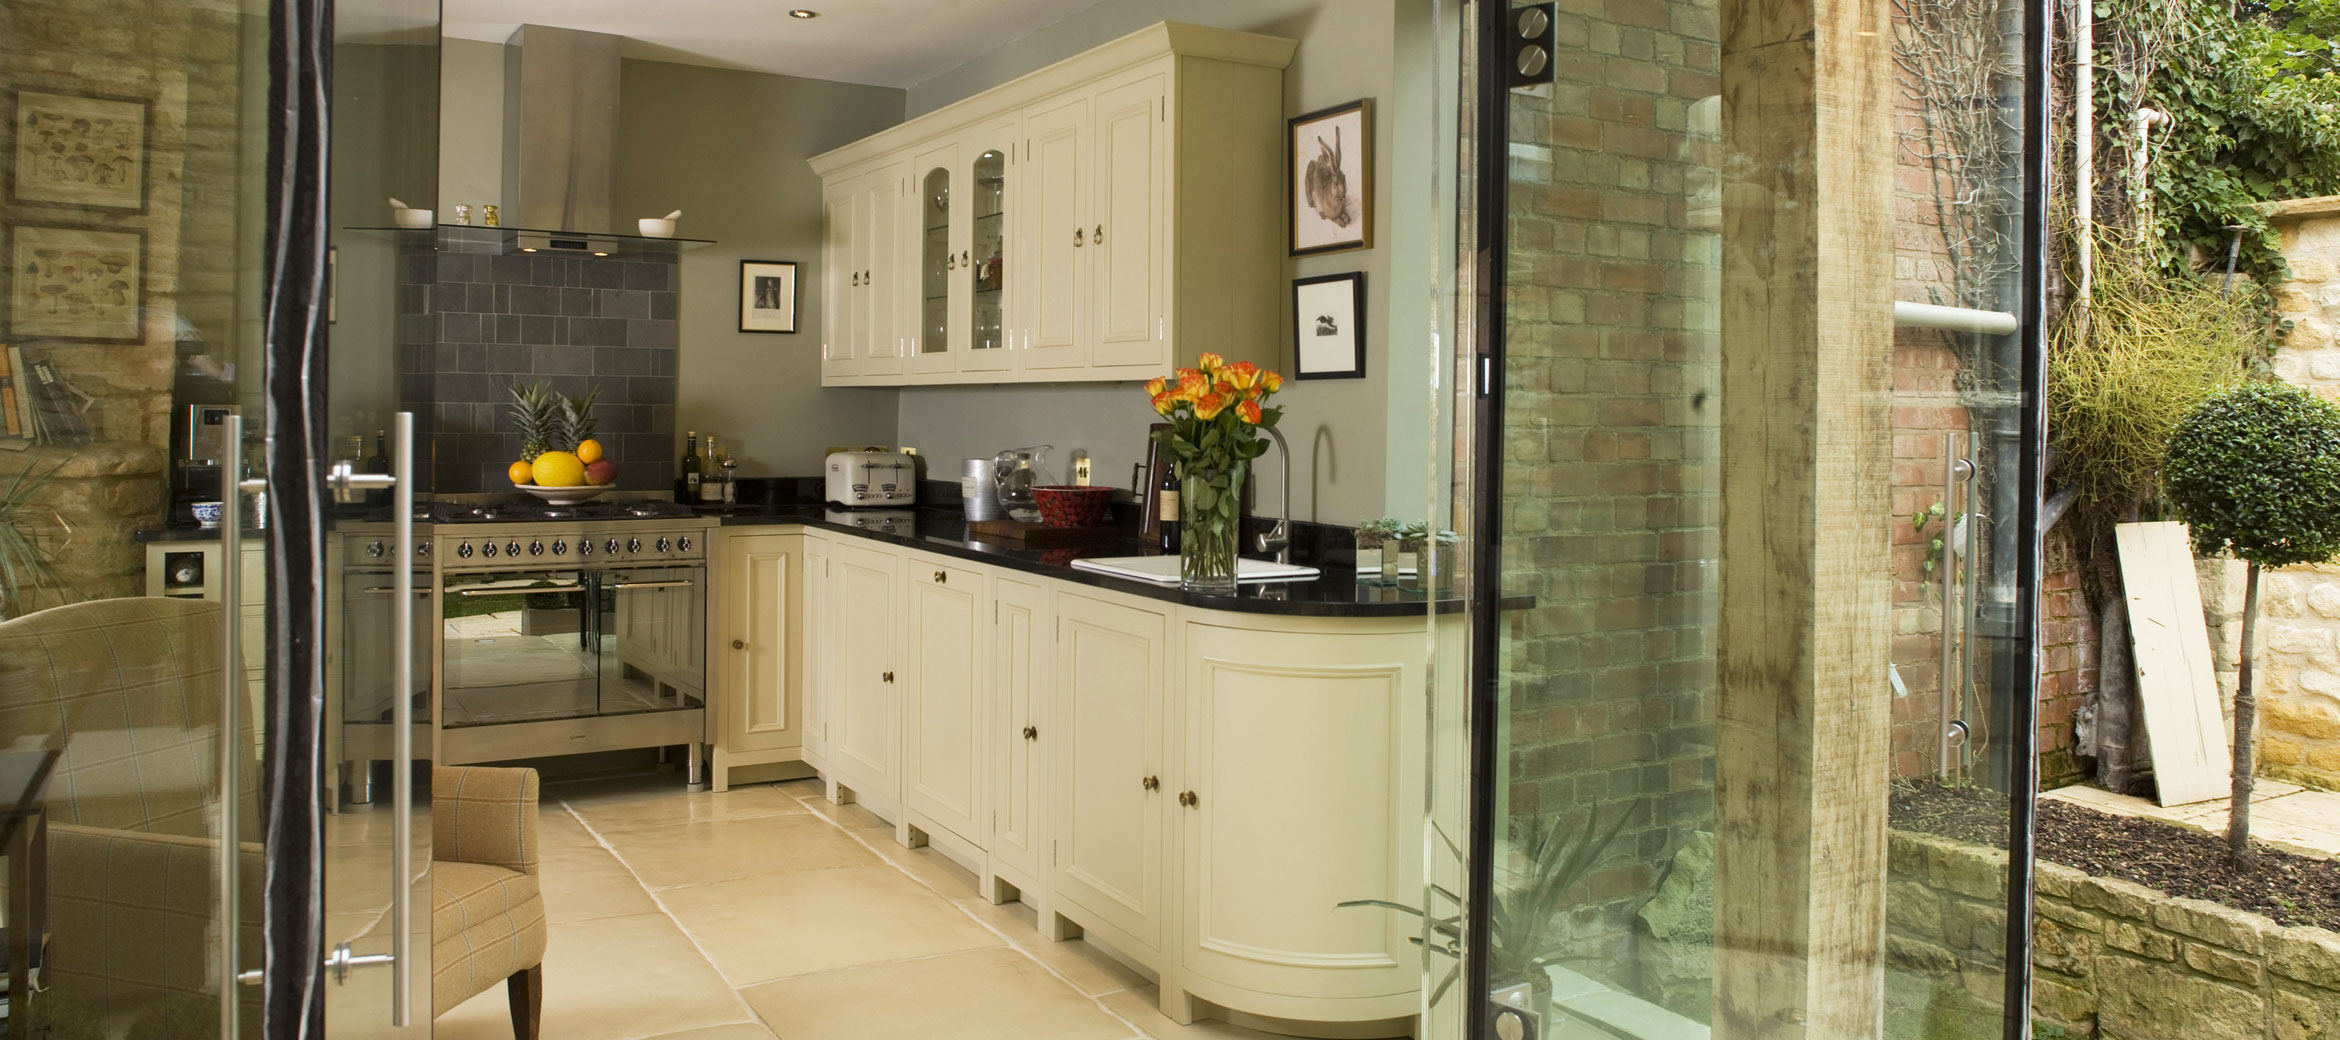 Singer-House-chipping-campden-cotswold-kitchen